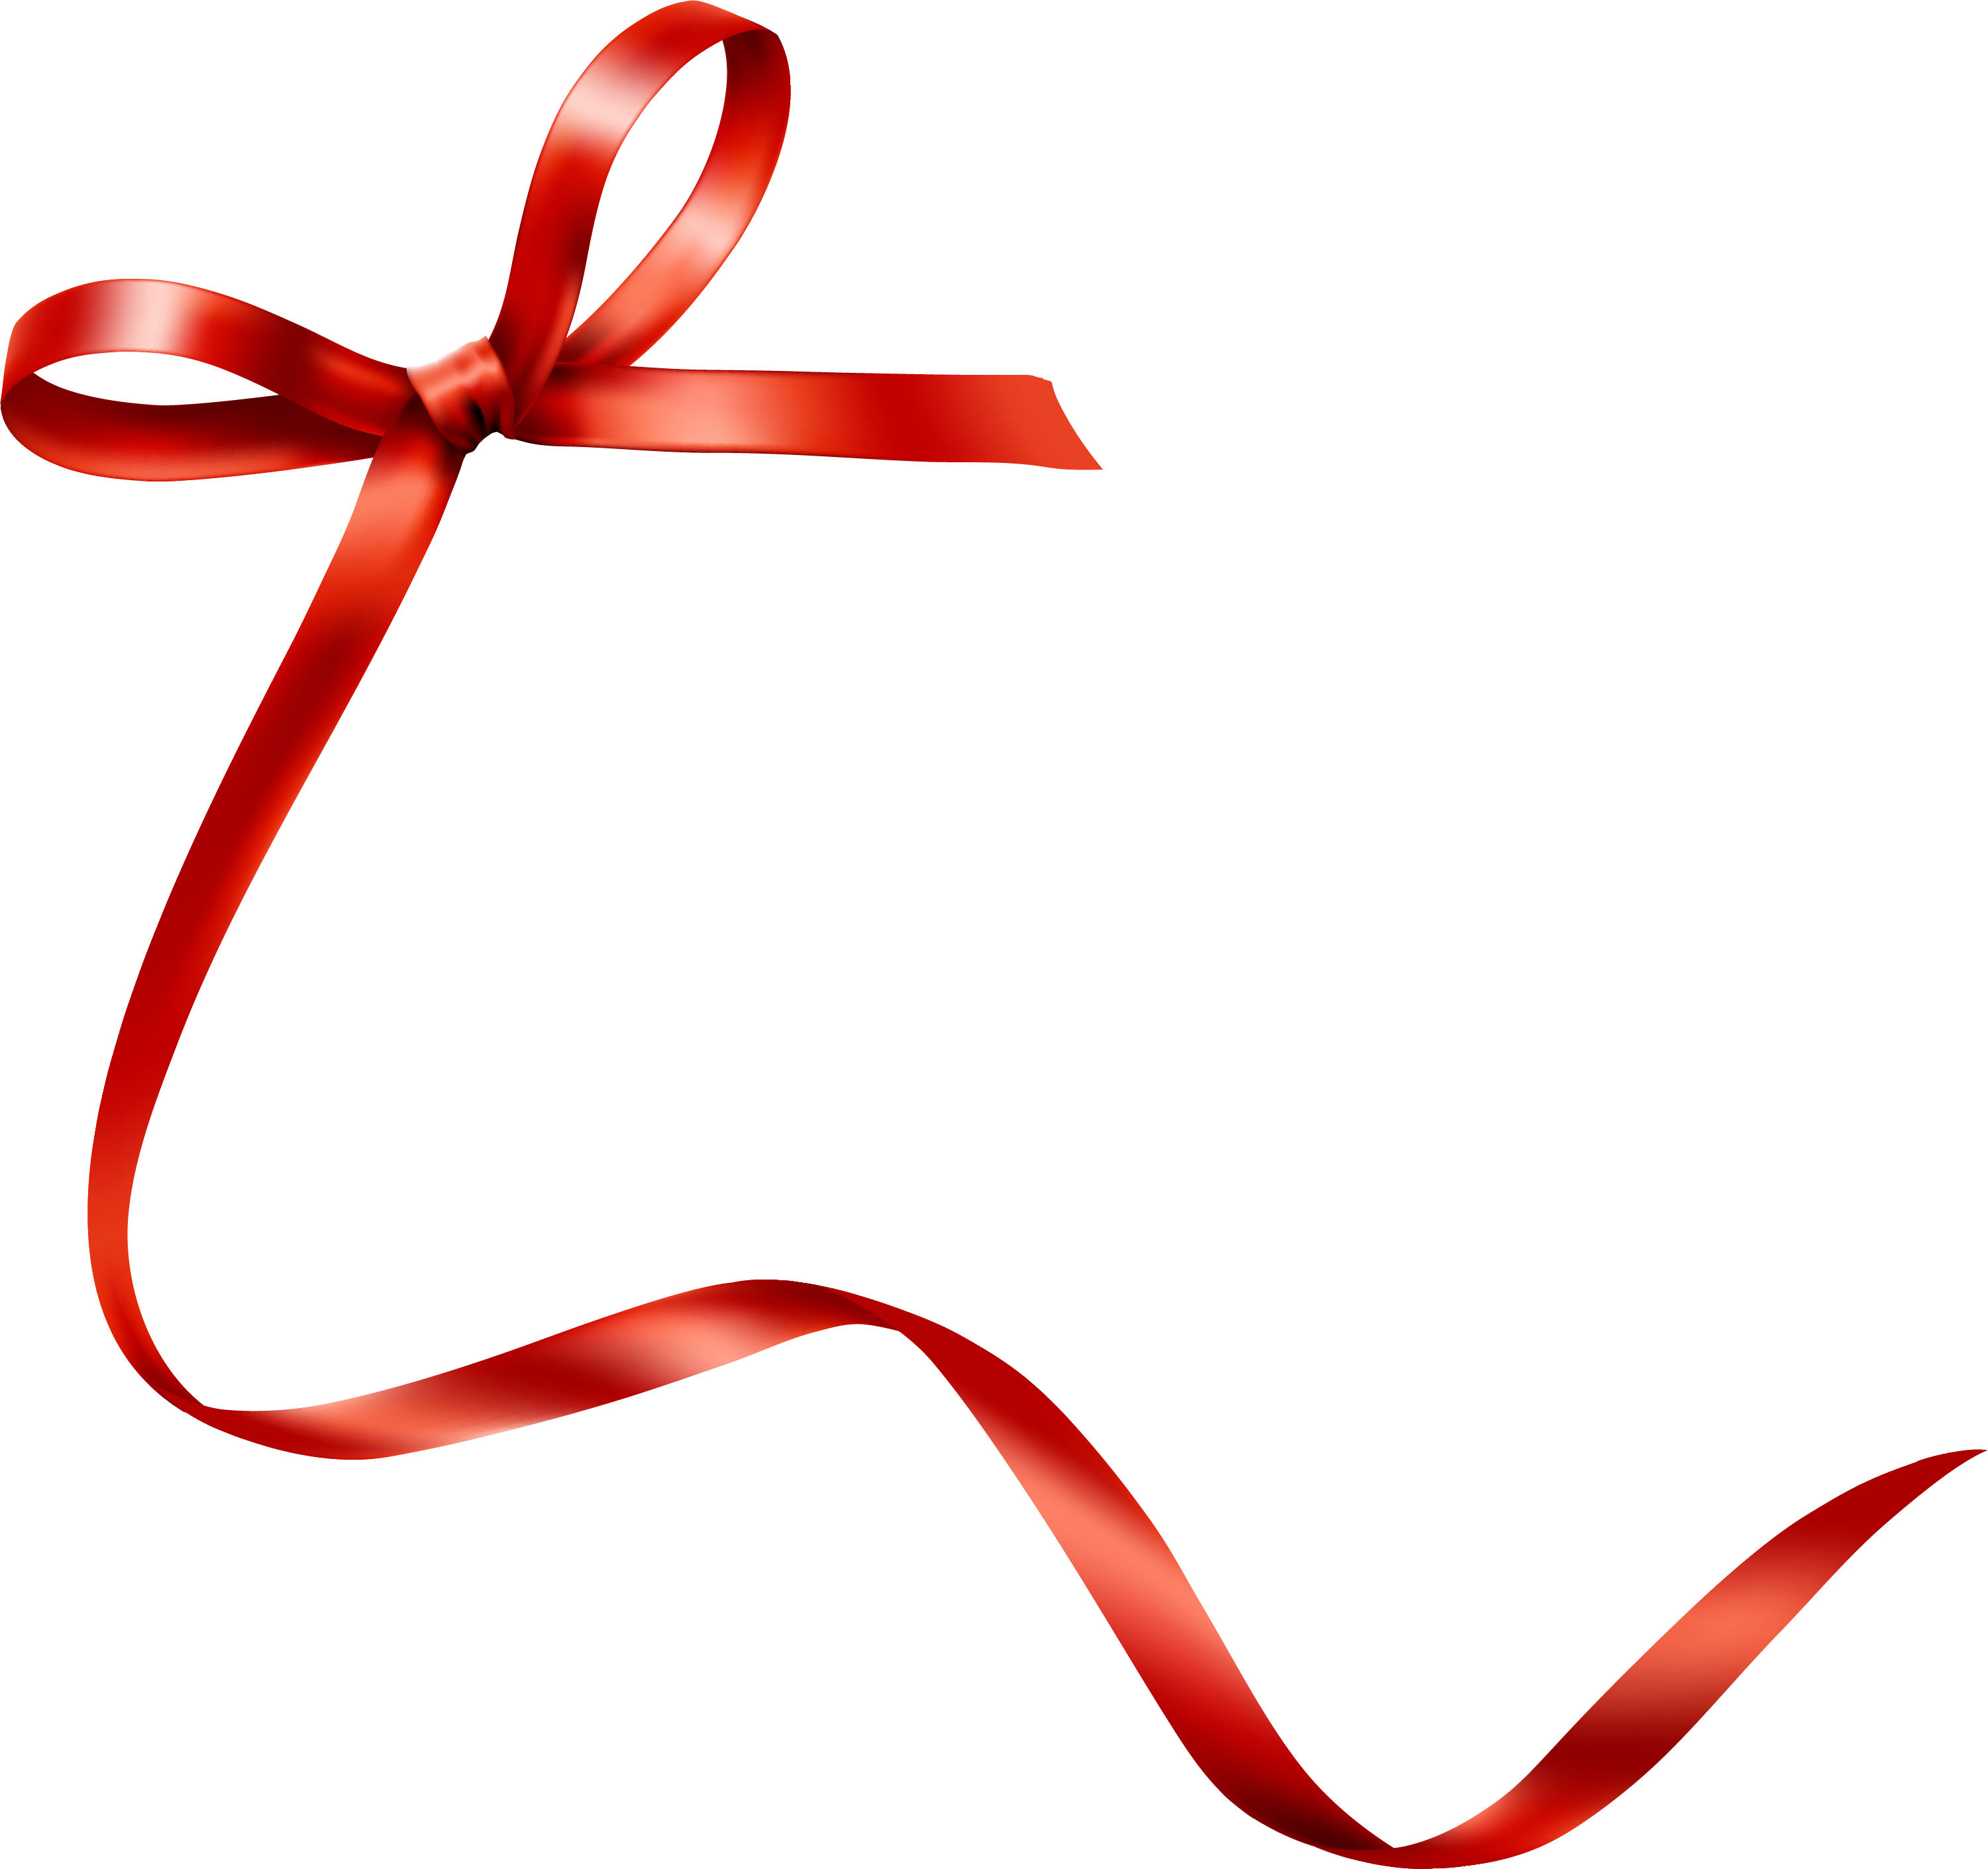 jpg transparent Drawing ribbon red tie. Bow clipart hand drawn.